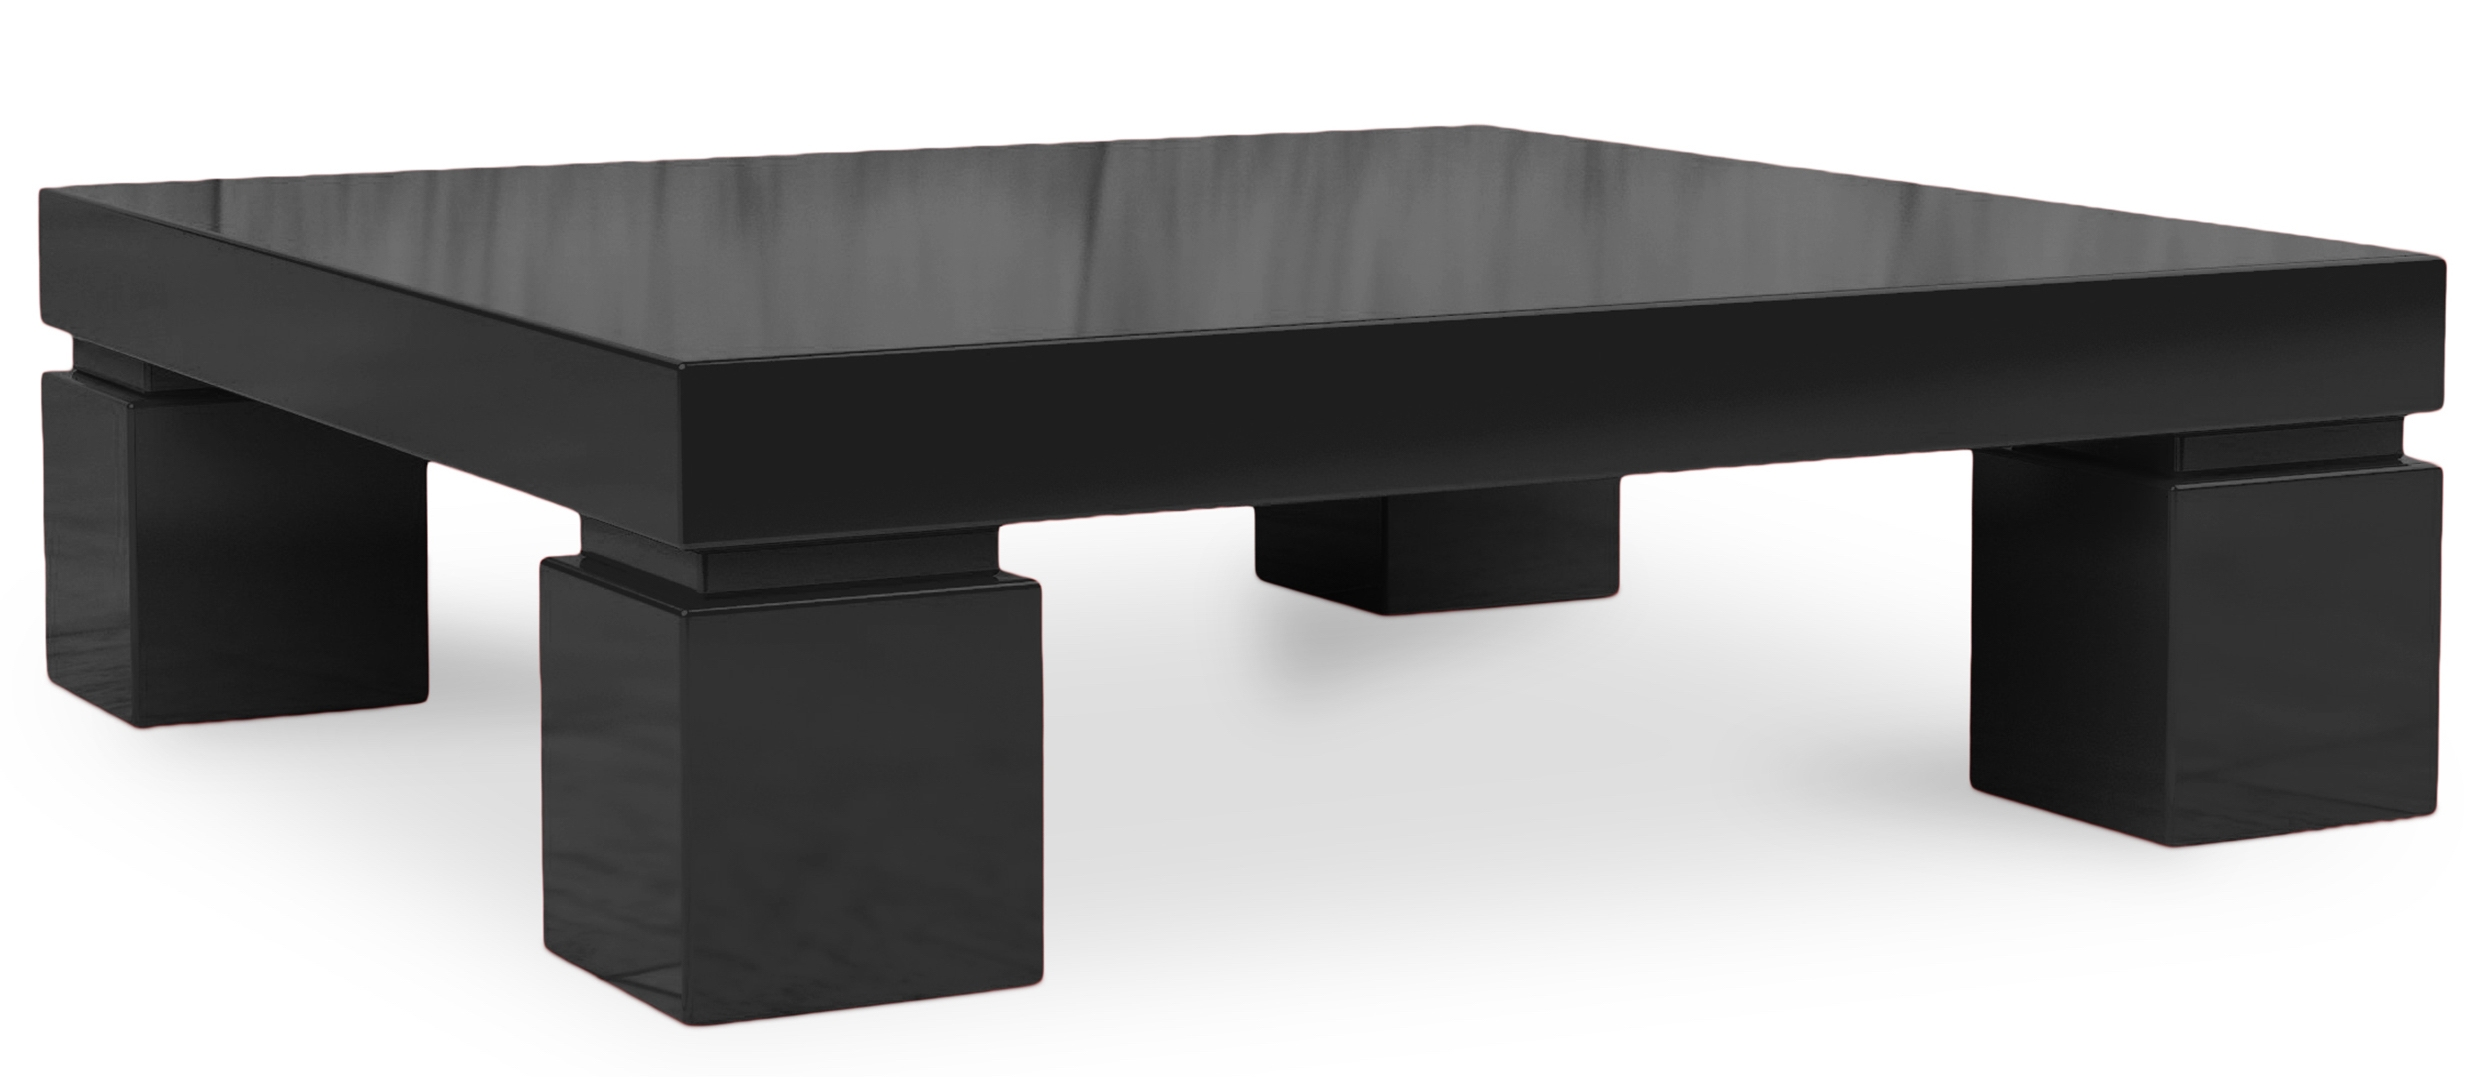 Table basse carr e laqu e noir kare - Table basse carree pas cher ...